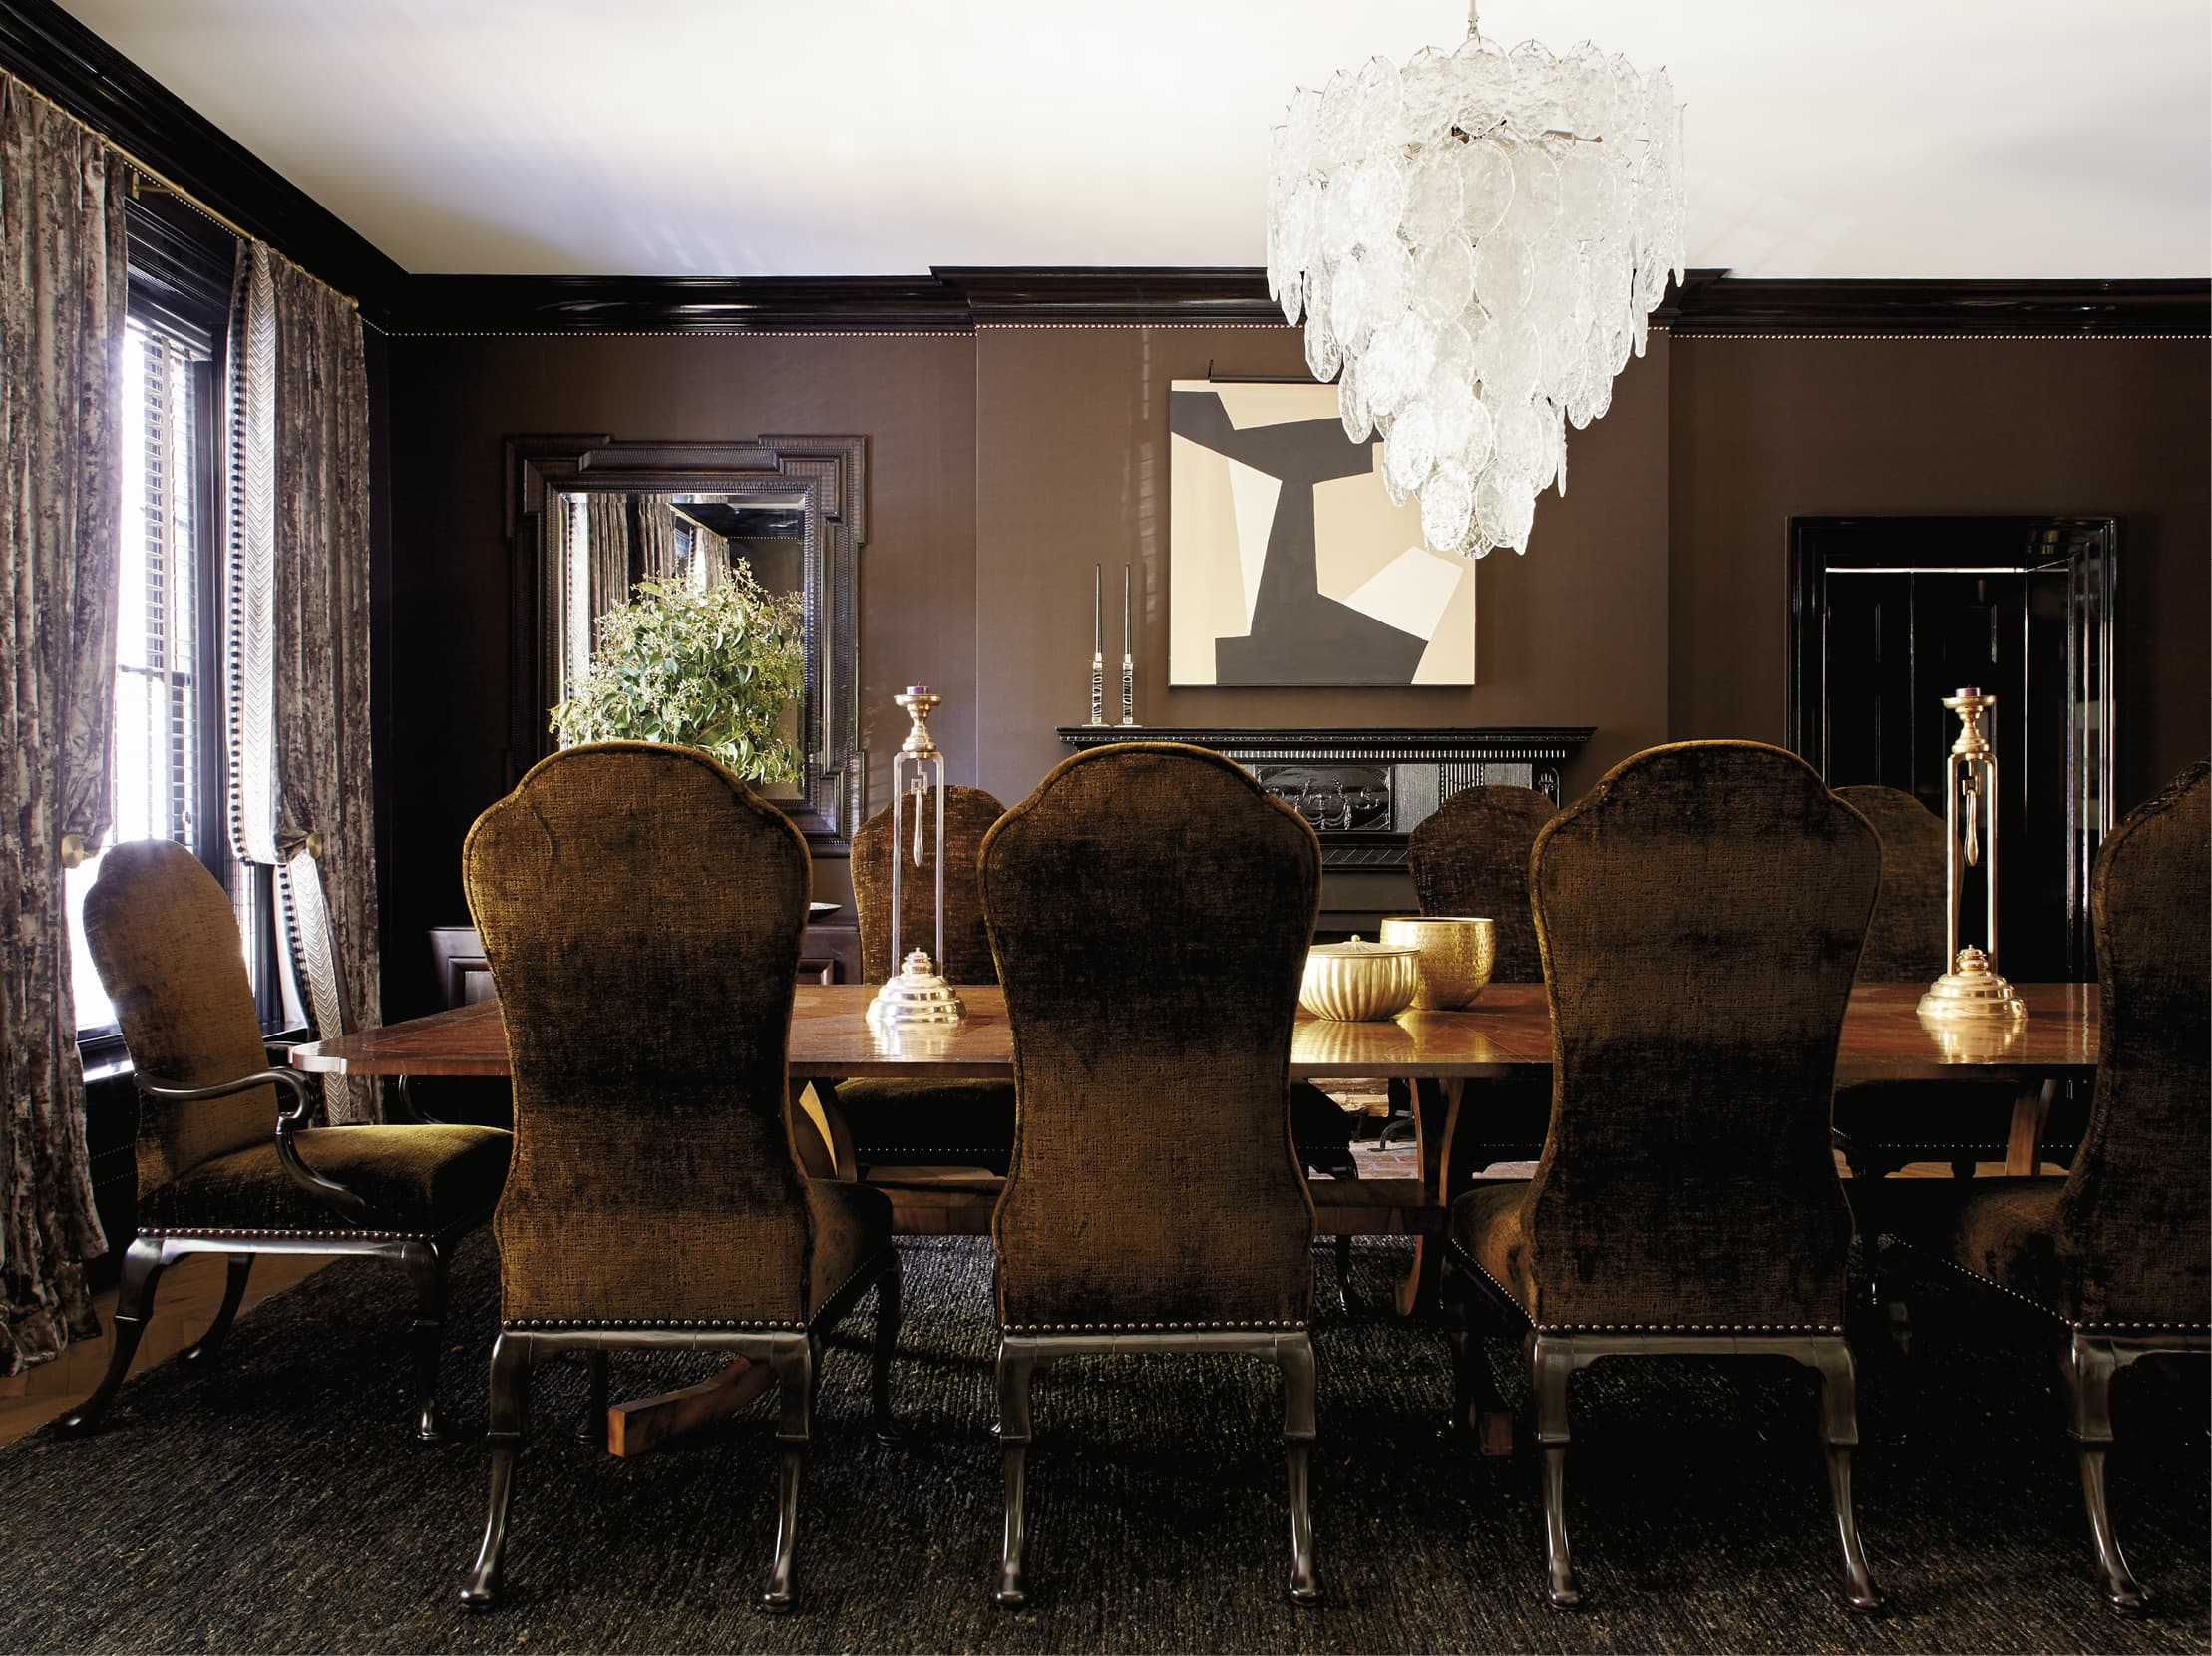 Dining room with brown walls and an interesting chandelier